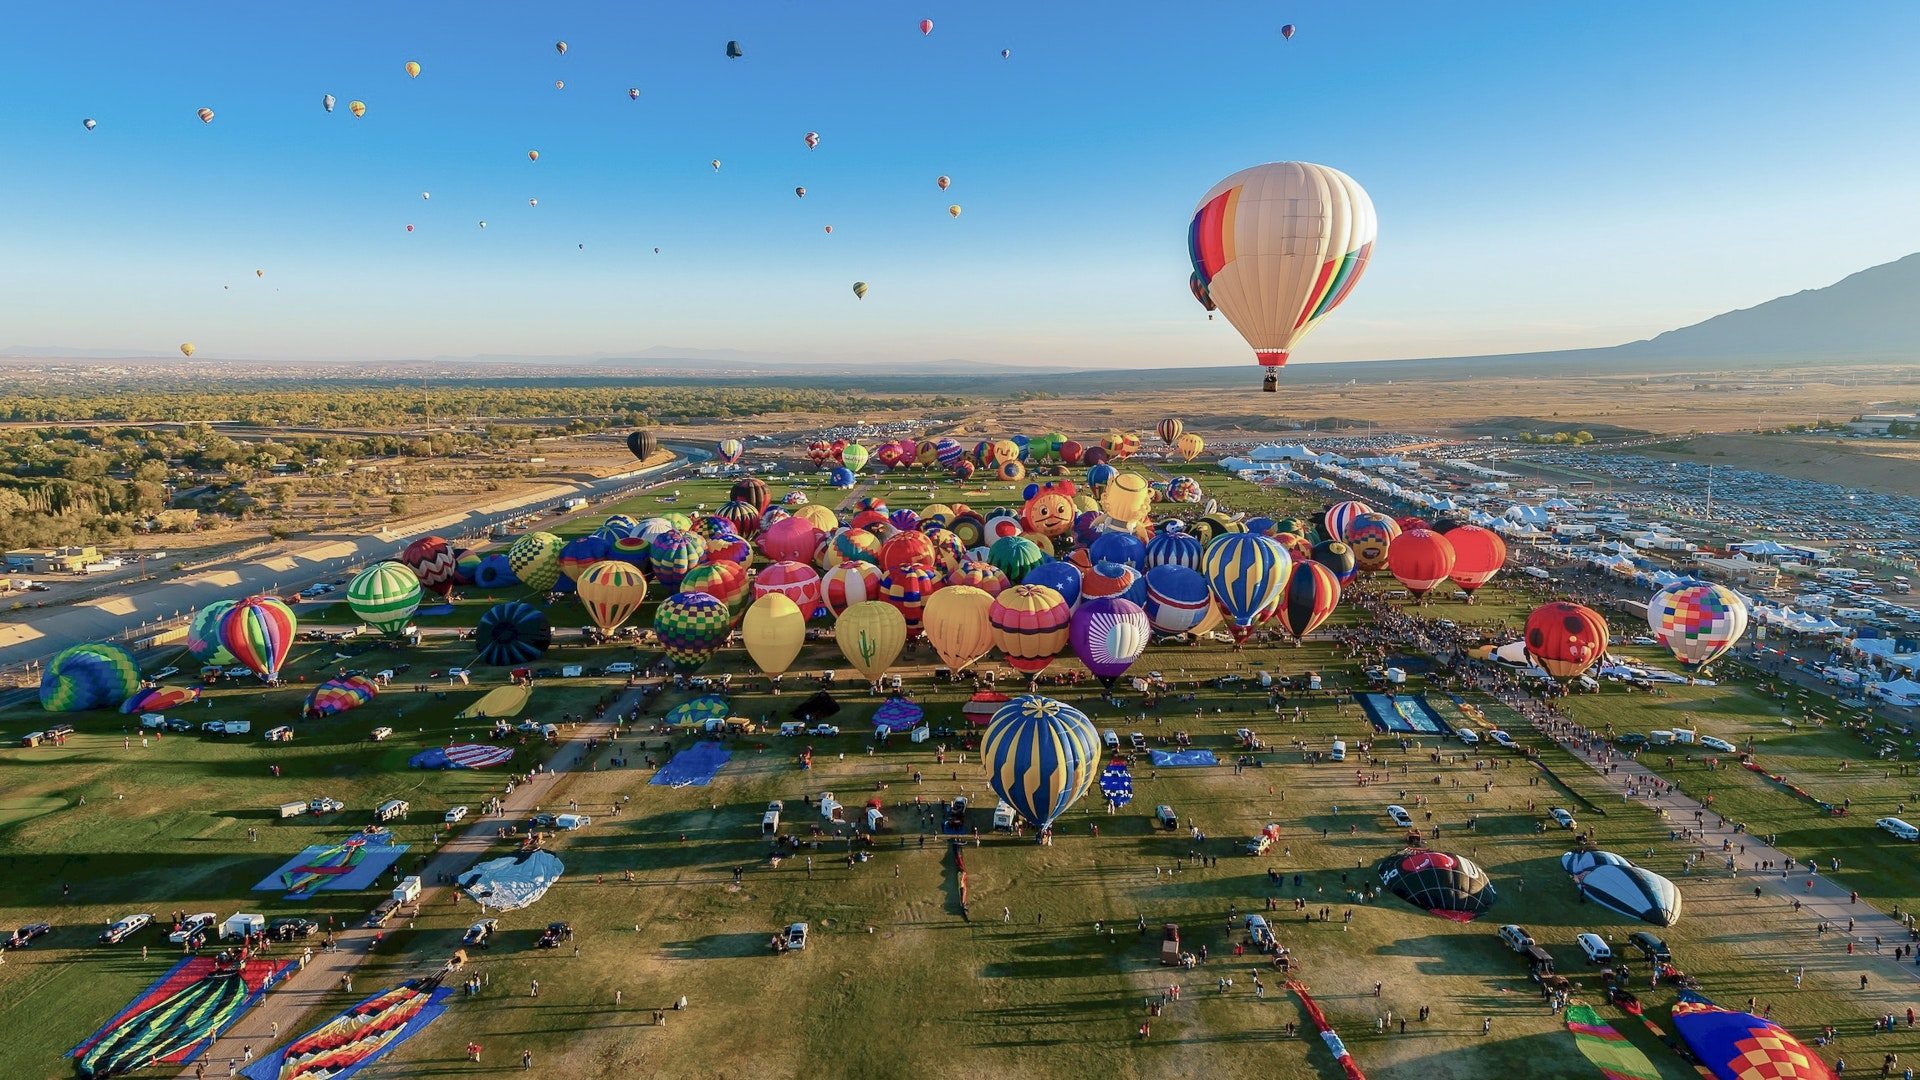 Hot air balloons rise over Albuquerque.